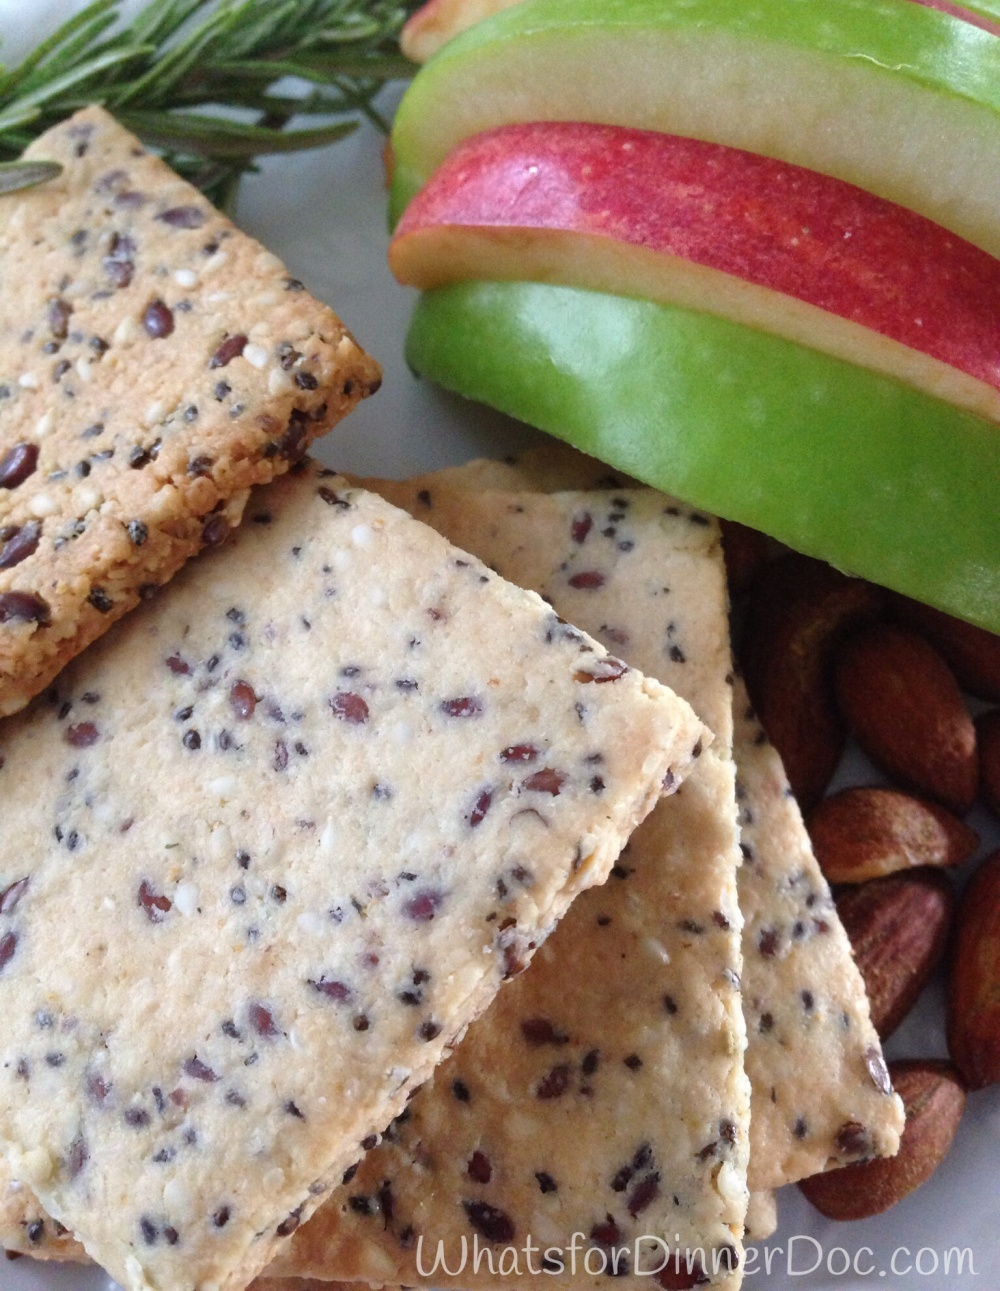 Gluten Free, almond, Flax, Chia. Seed crackers